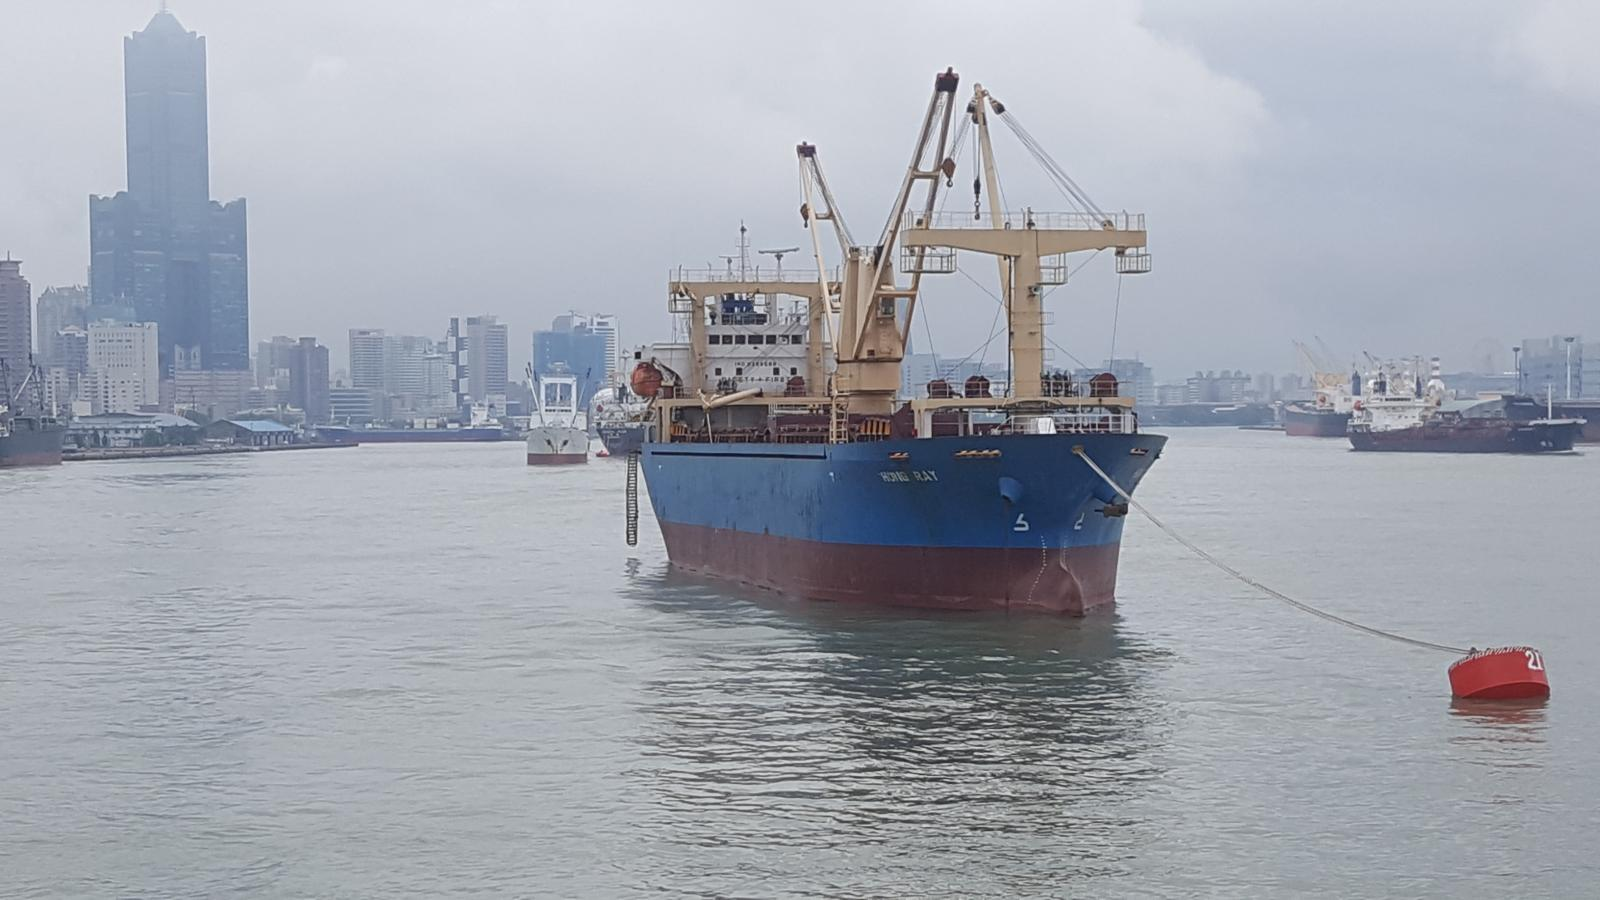 Blue-hulled cargo ship tied up to buoys in Kaohsiung